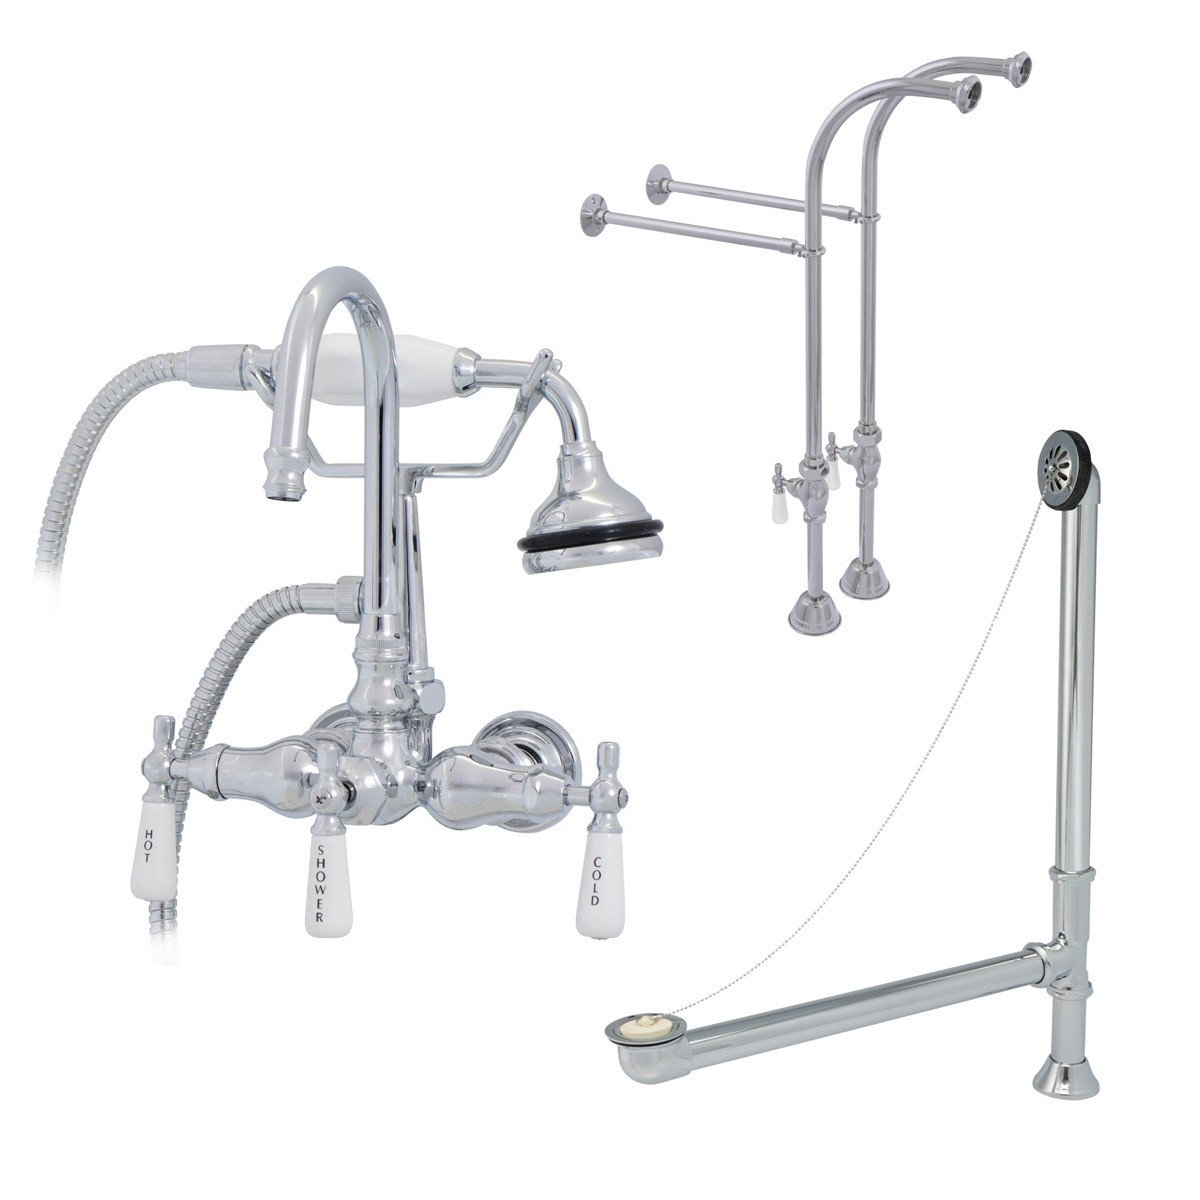 Ideas, old fashioned tub faucets old fashioned tub faucets randolph morris clawfoot tub freestanding gooseneck faucet drain 1200 x 1200  .